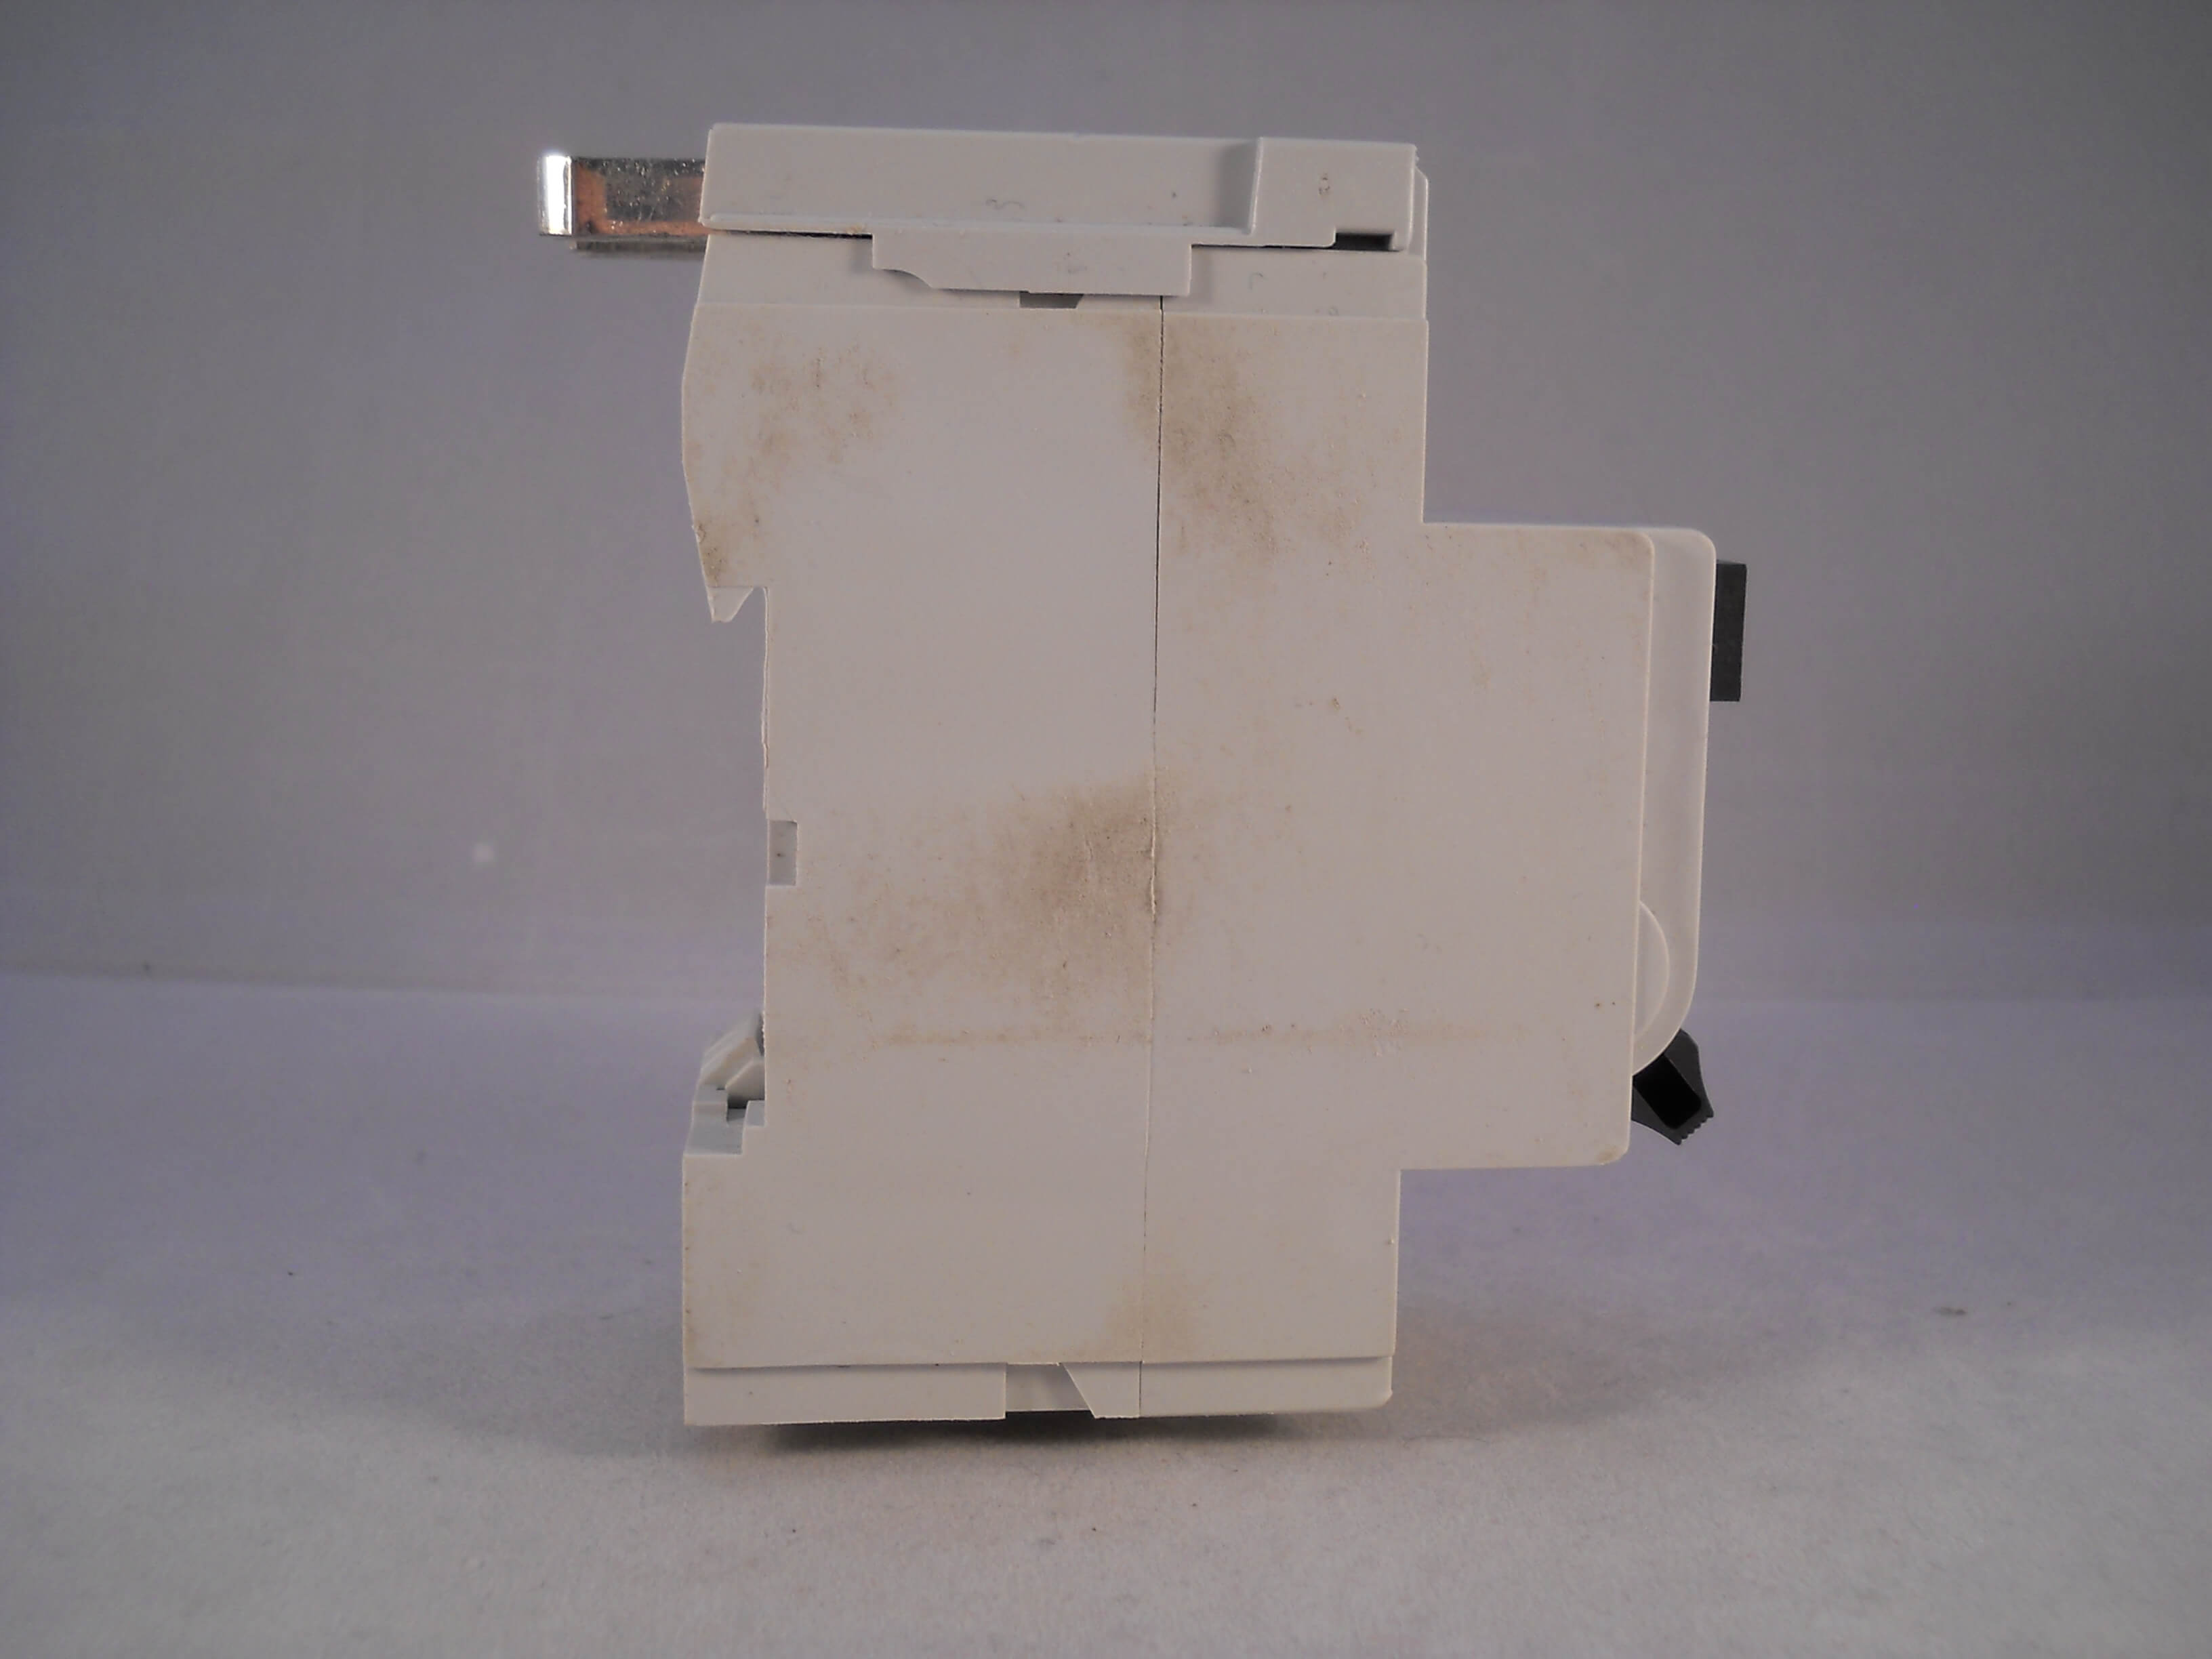 SQOE063030-4-1 Qwikline Fuse Box on old breaker, old screw, old electrical,